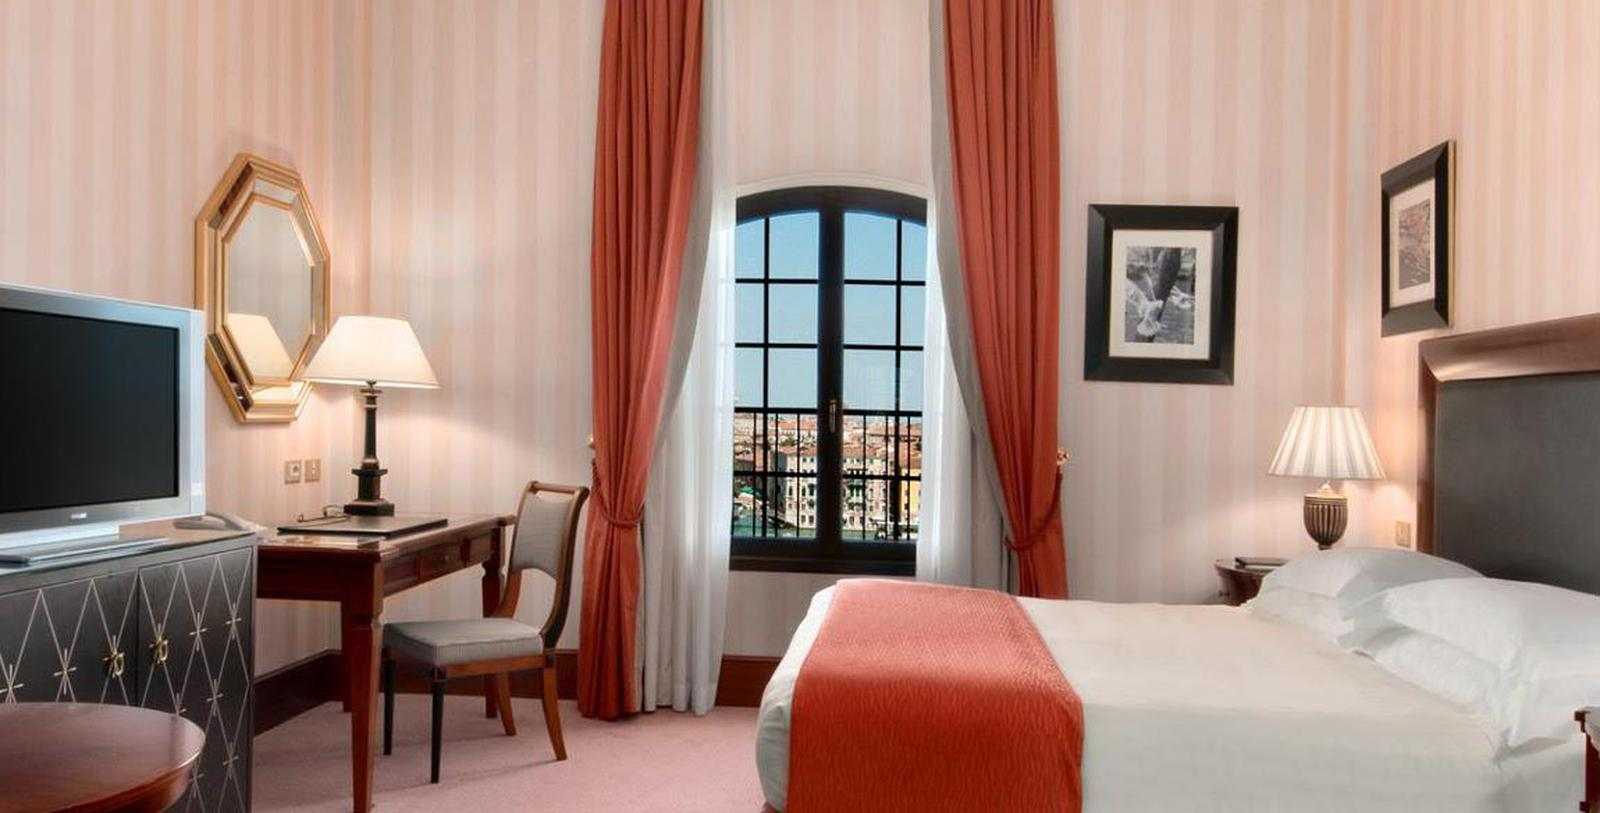 Image of Guestroom Interior, Hilton Molino Stucky Venice, Italy, 1884, Member of Historic Hotels Worldwide, Location Map